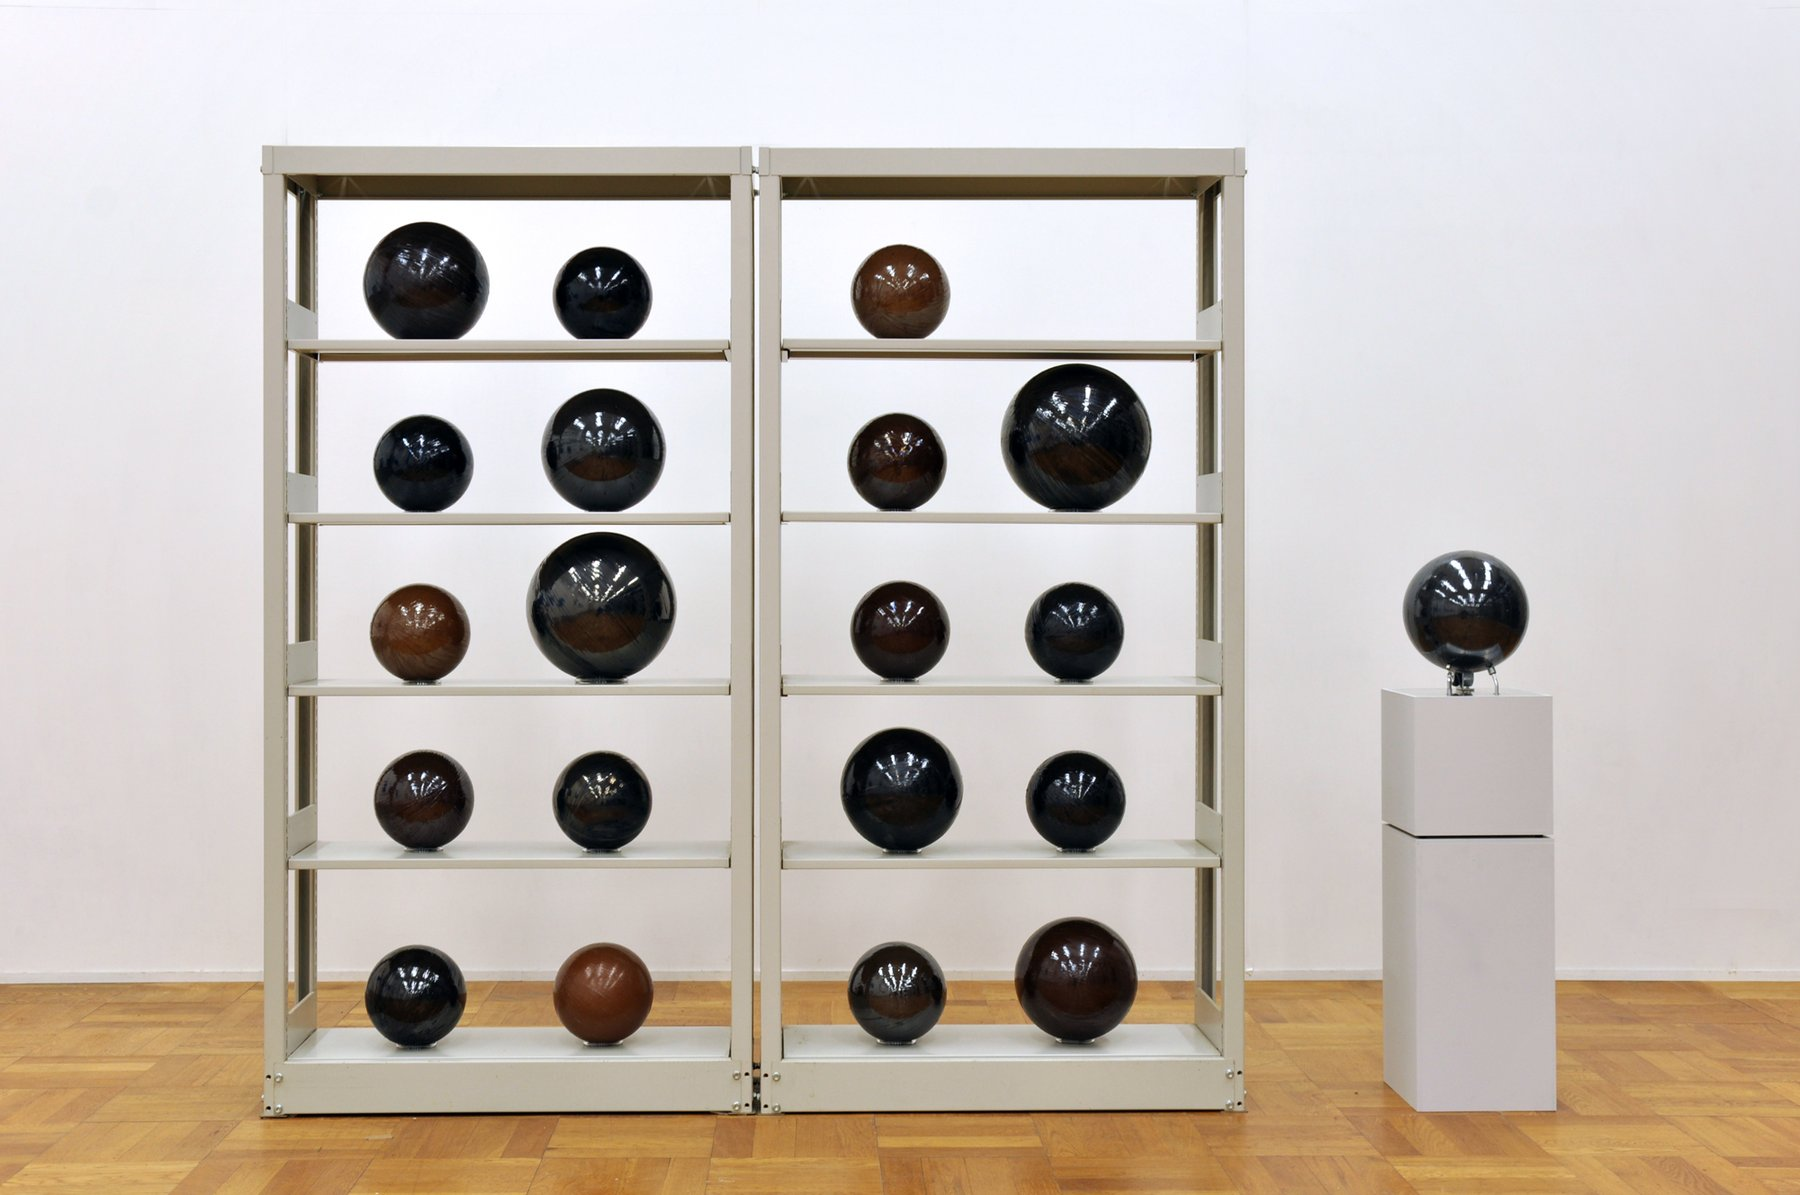 Several spheres on a shelf create a grid, Yagi Soundtracks